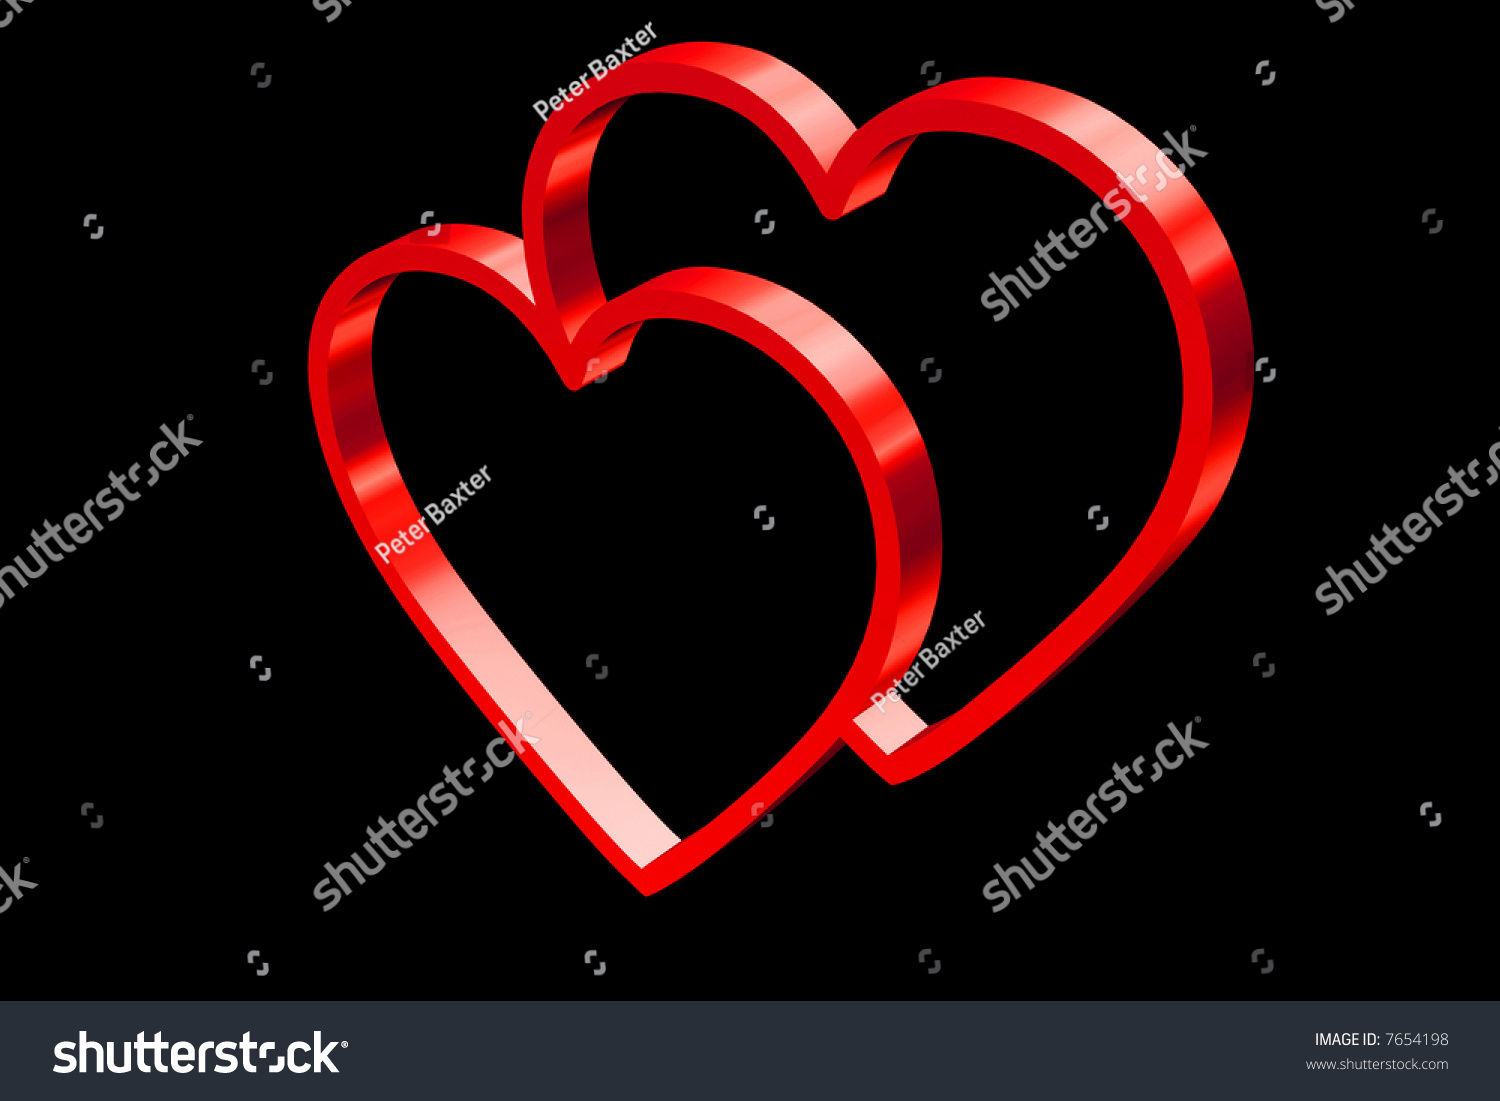 Two hearts one symbol love stock illustration 7654198 shutterstock two hearts in one a symbol of love biocorpaavc Images